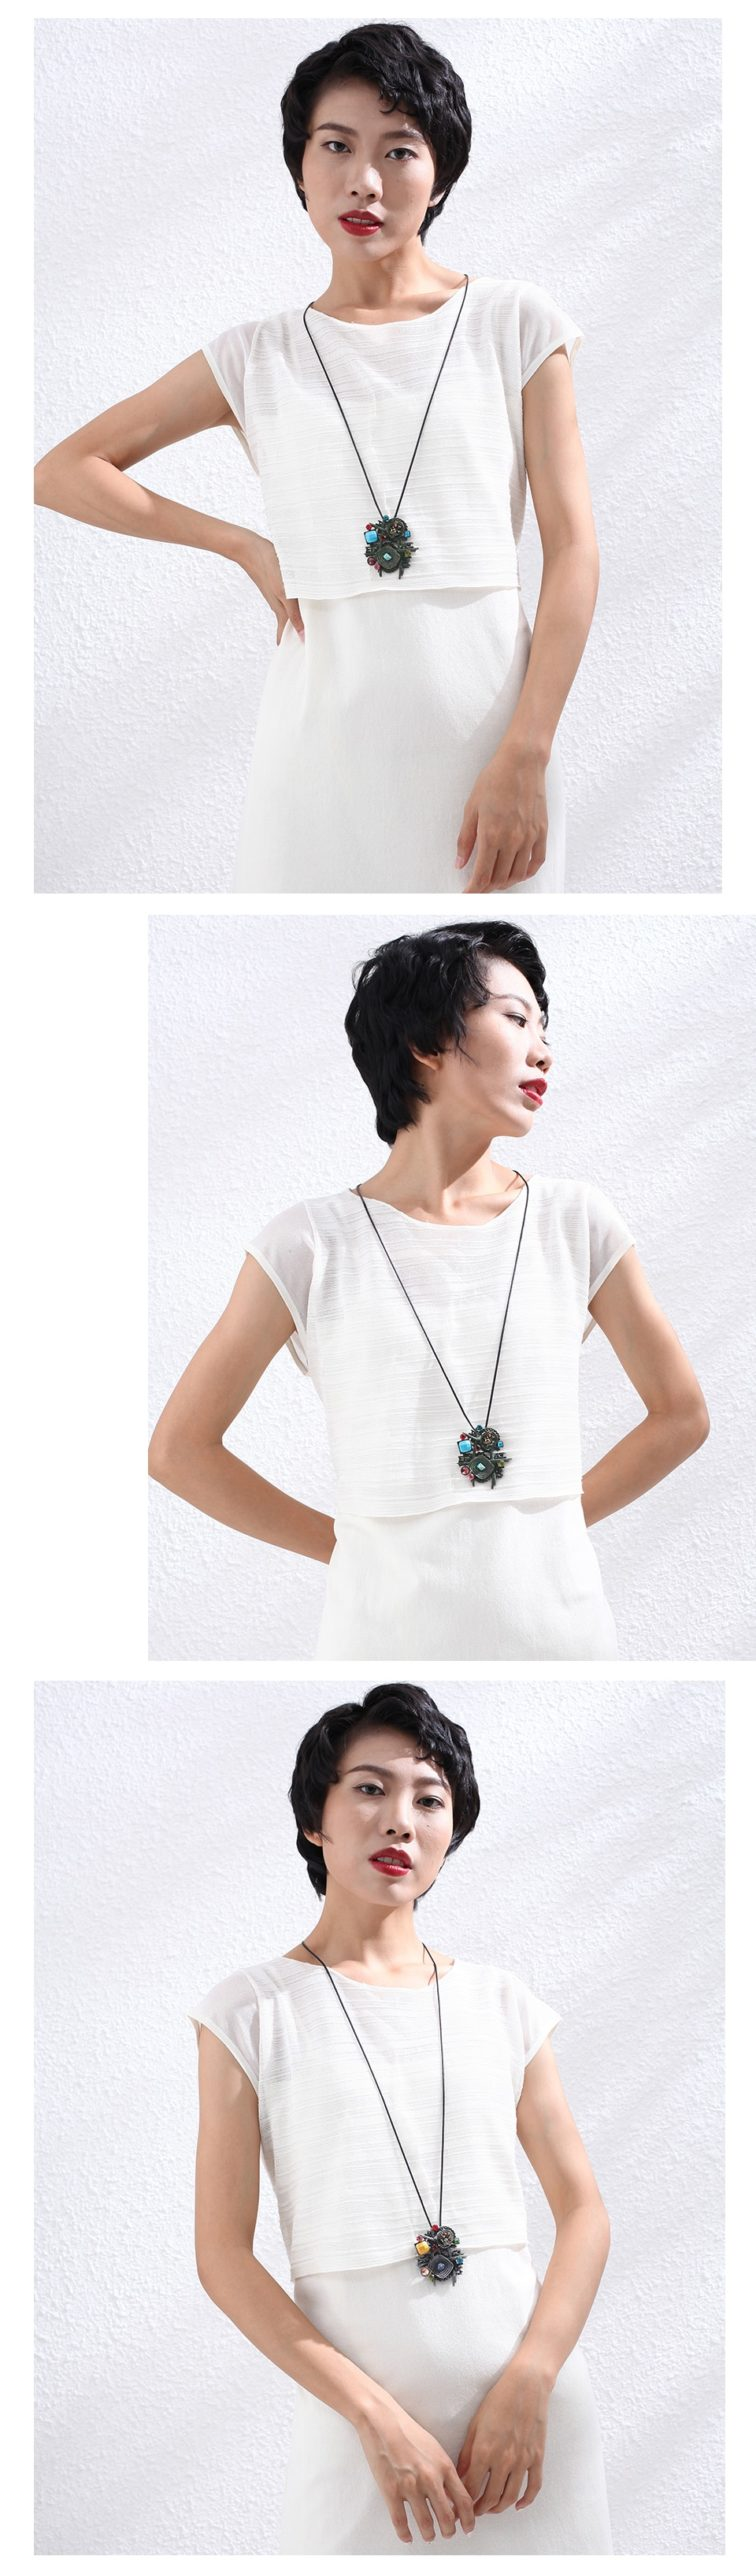 Long Necklace for Women Vintage Jewelry Stones Beads Flower Pendants Suspension Rope Chains Choker Wholesale Jewellery 2020 New